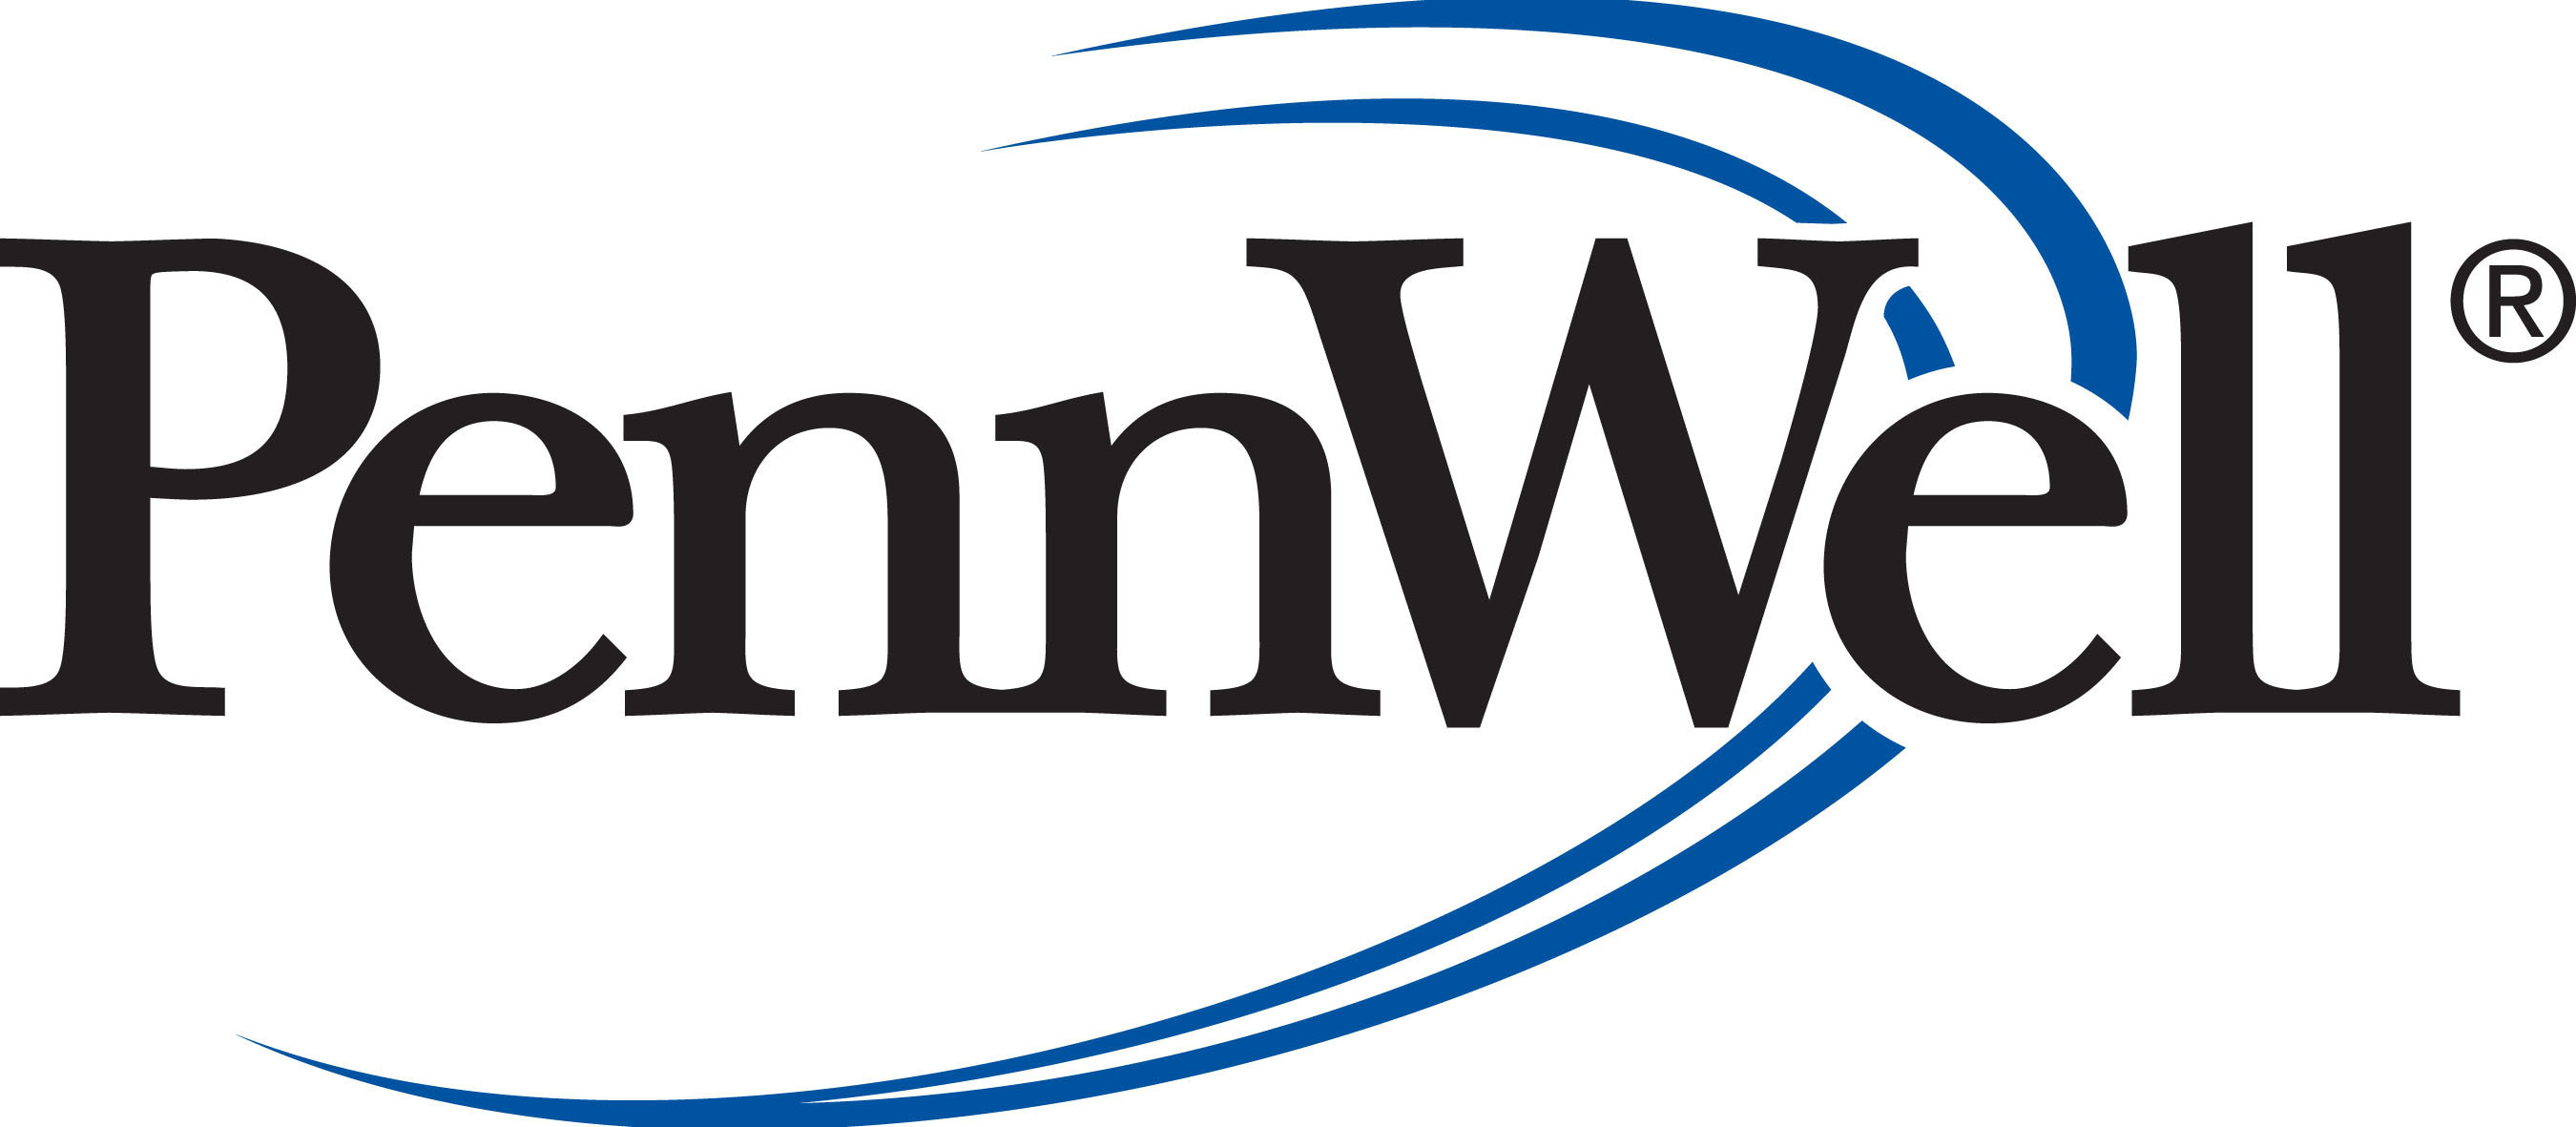 PennWell Corp. is a diversified business-to-business media and information company that provides quality ...